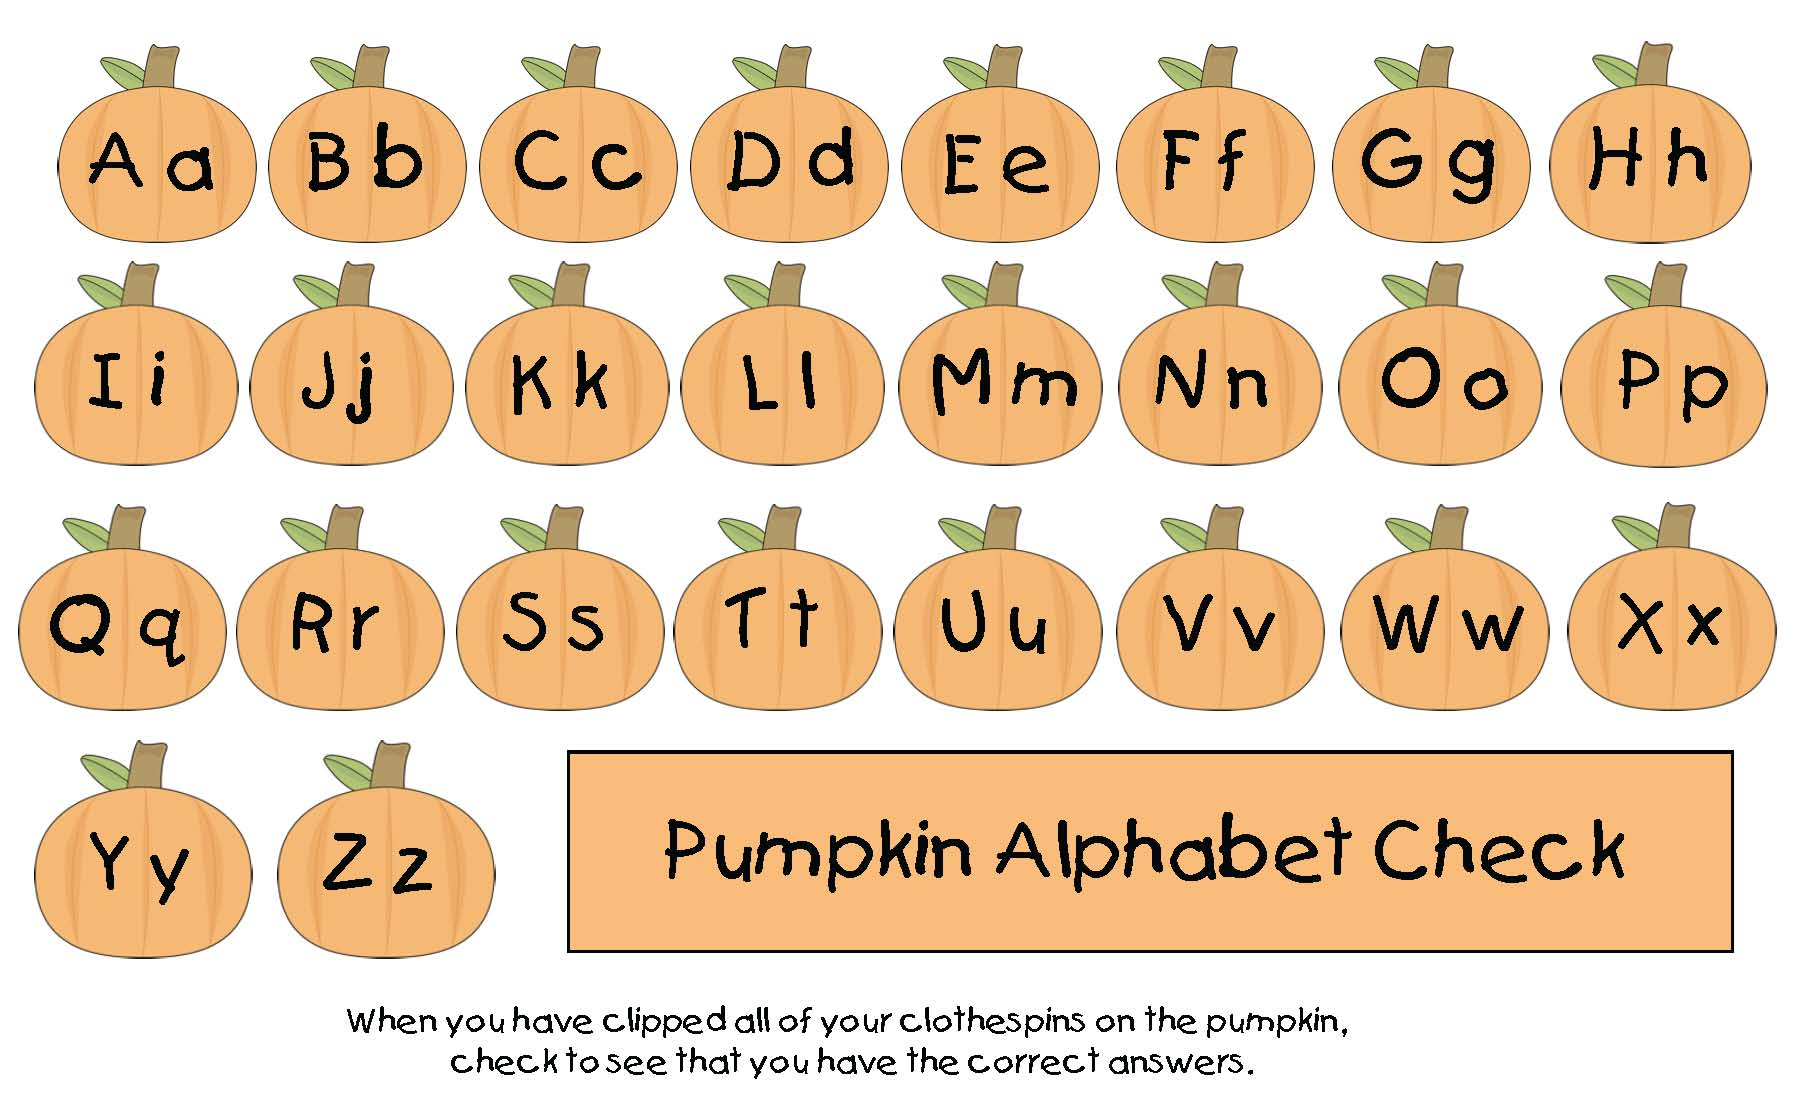 apple activities, apple games, apple lessons, common core apples, alphabet activities, alphabet matching, upper and lowercase letter matching games, alphabet games, alphabet centers, apple centers, pumpkin activities, pumpkin games, pumpkin alphabet, apple alphabet,